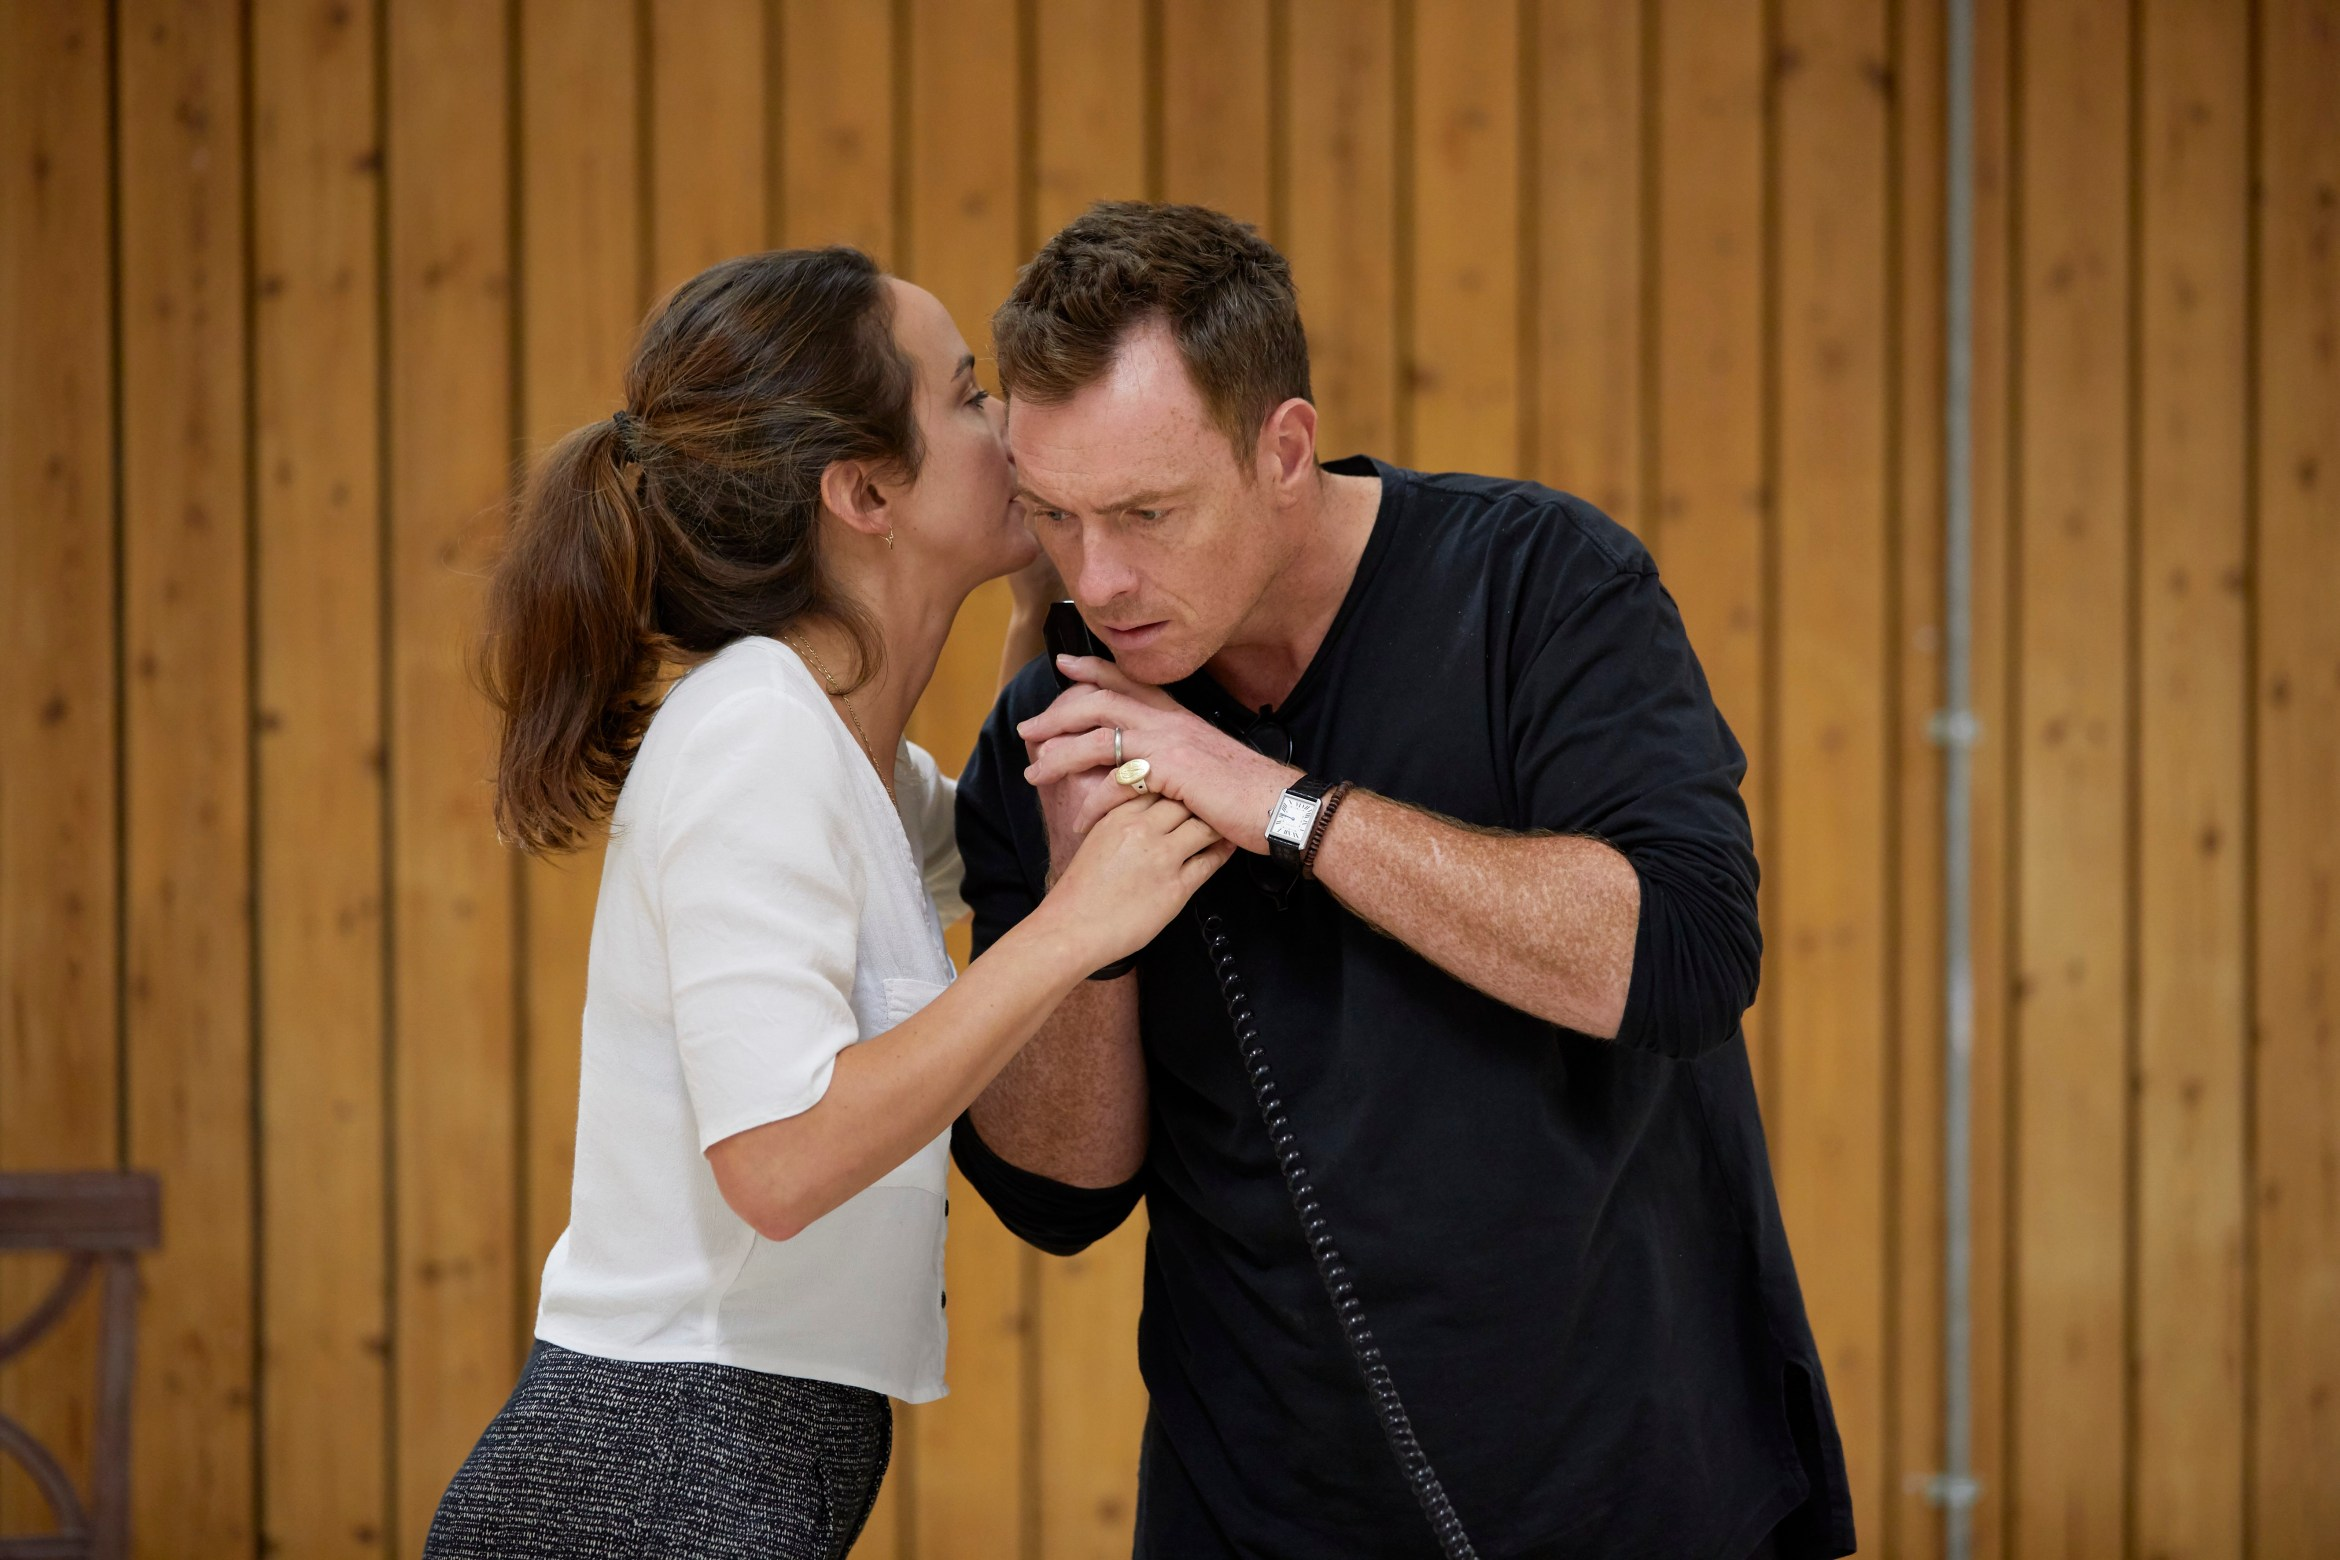 l-r Lydia Leonard and Toby Stephens in rehearsal for 'Oslo' - photo credit Brinkhoff Mögenberg.988-0117